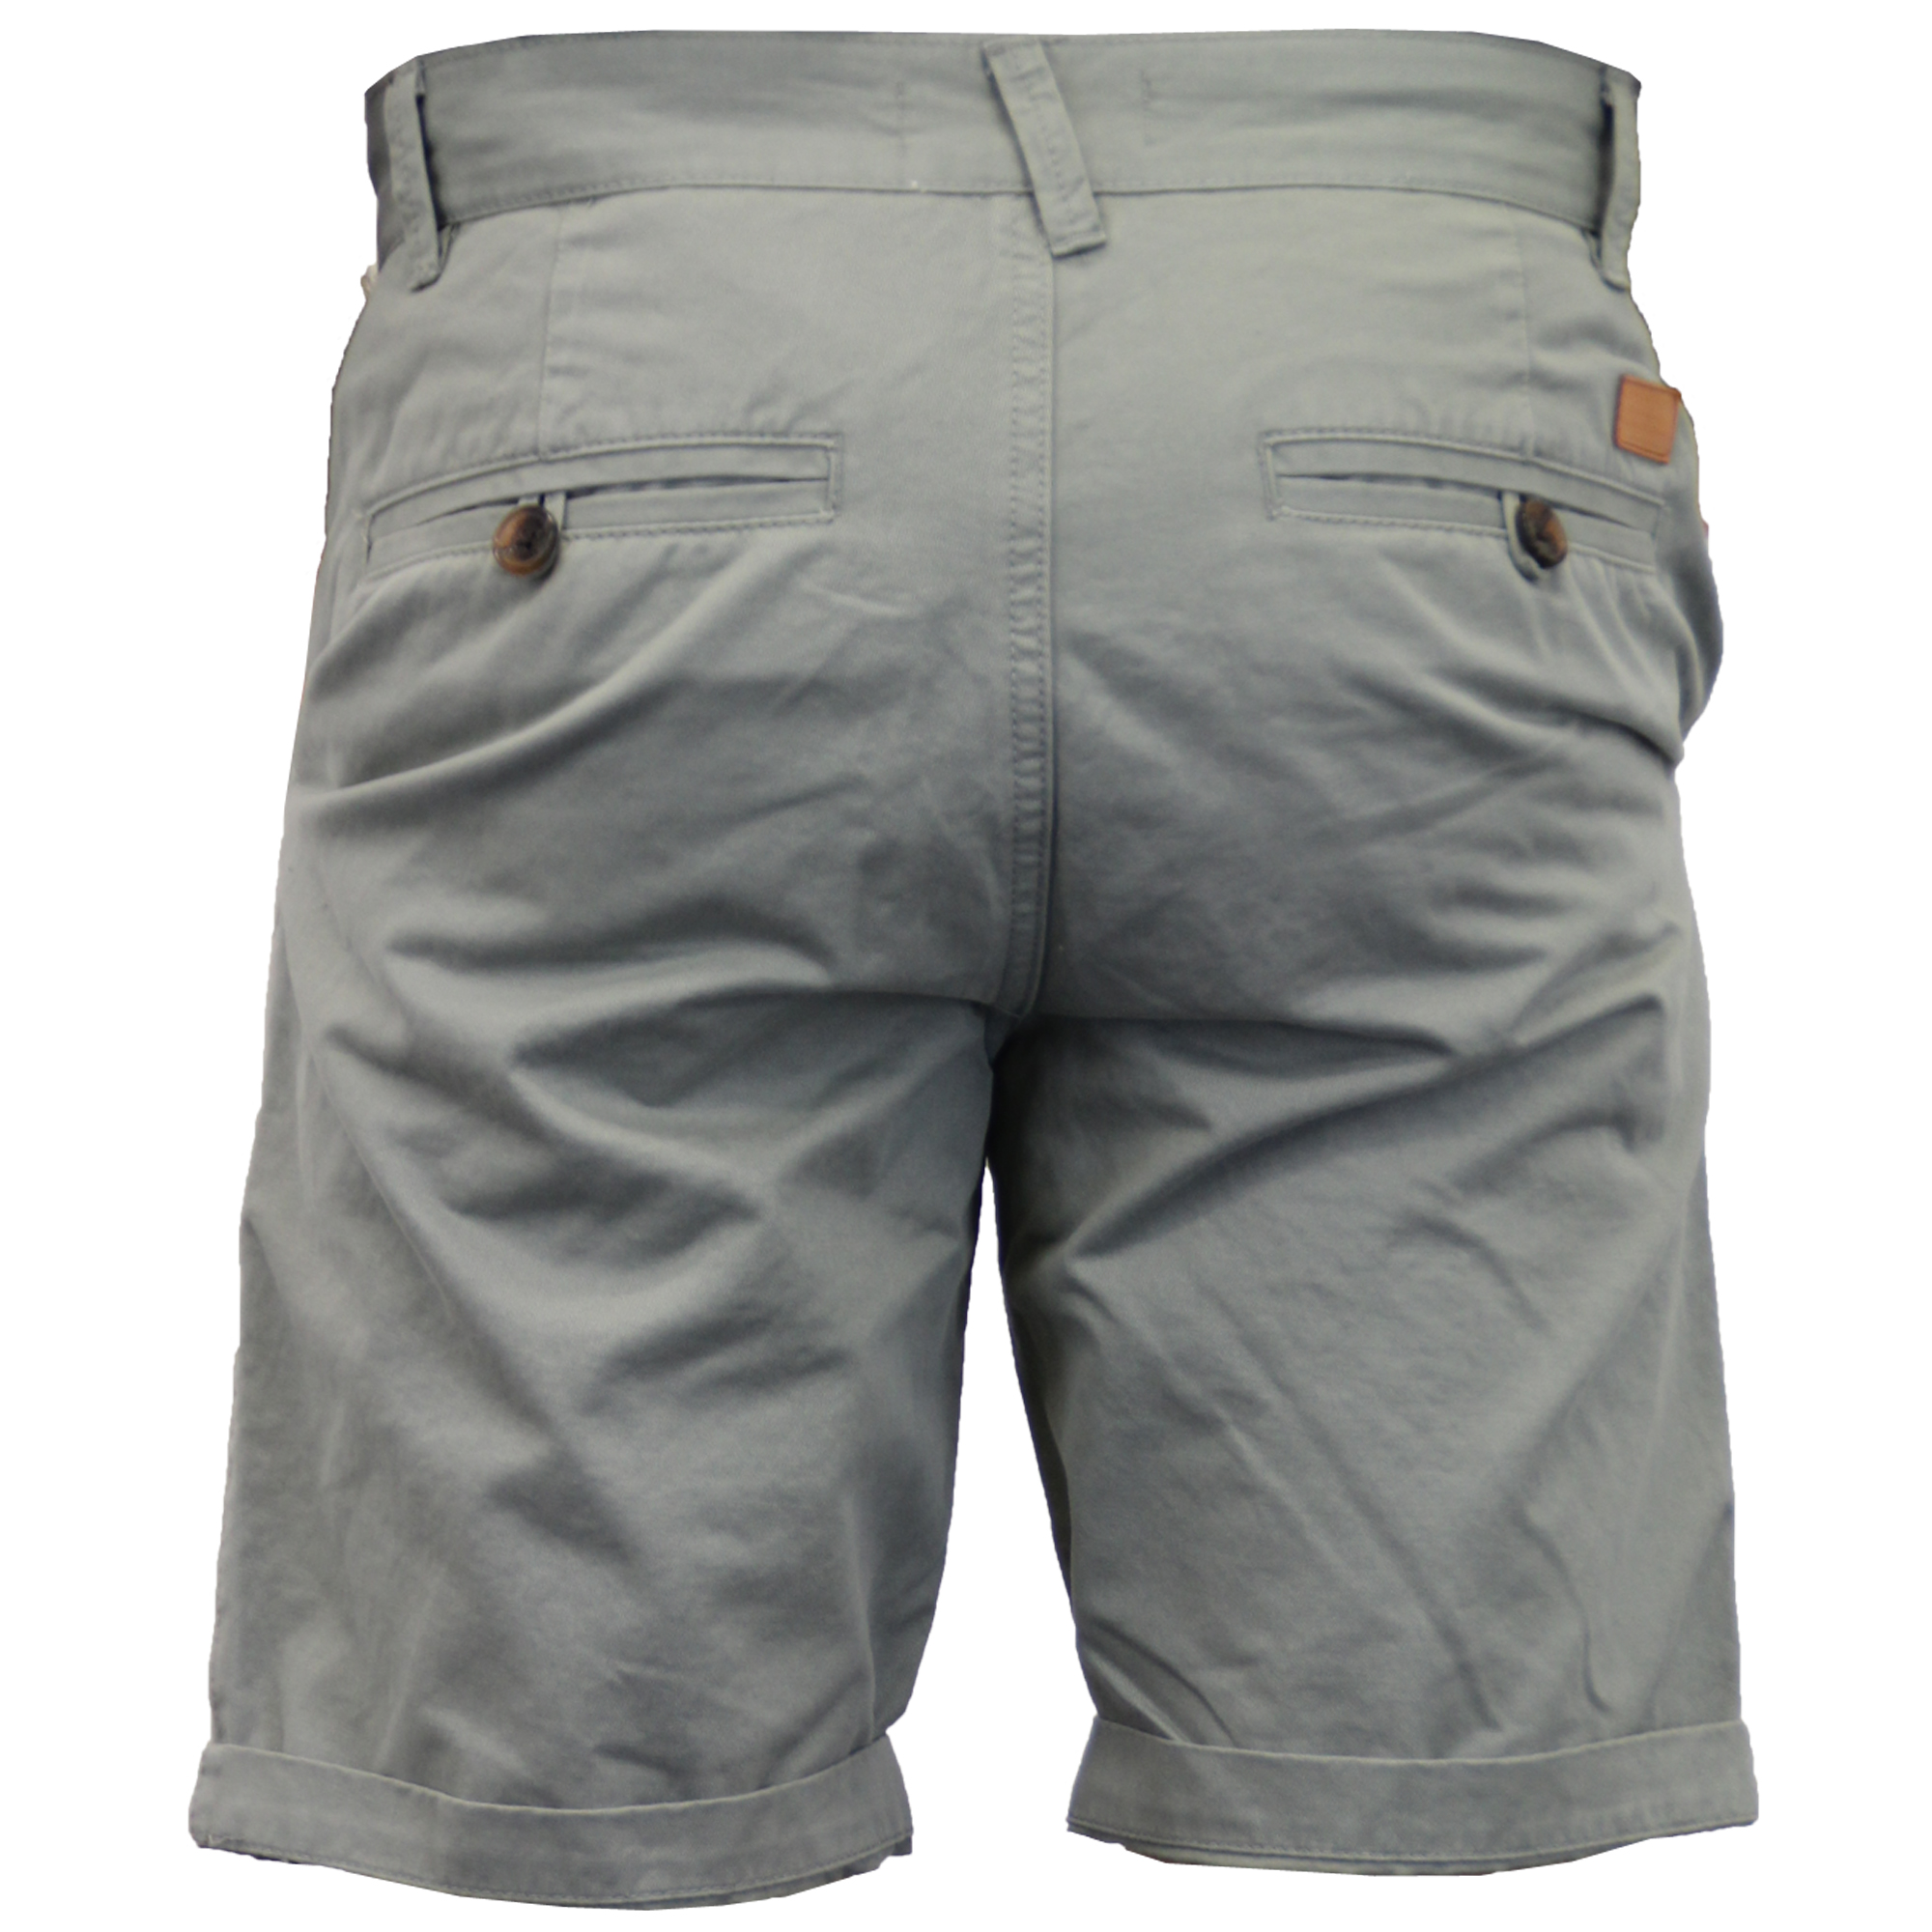 Mens-Chino-Shorts-Threadbare-Pants-Westace-Stallion-Knee-Length-Roll-Up-Summer thumbnail 24